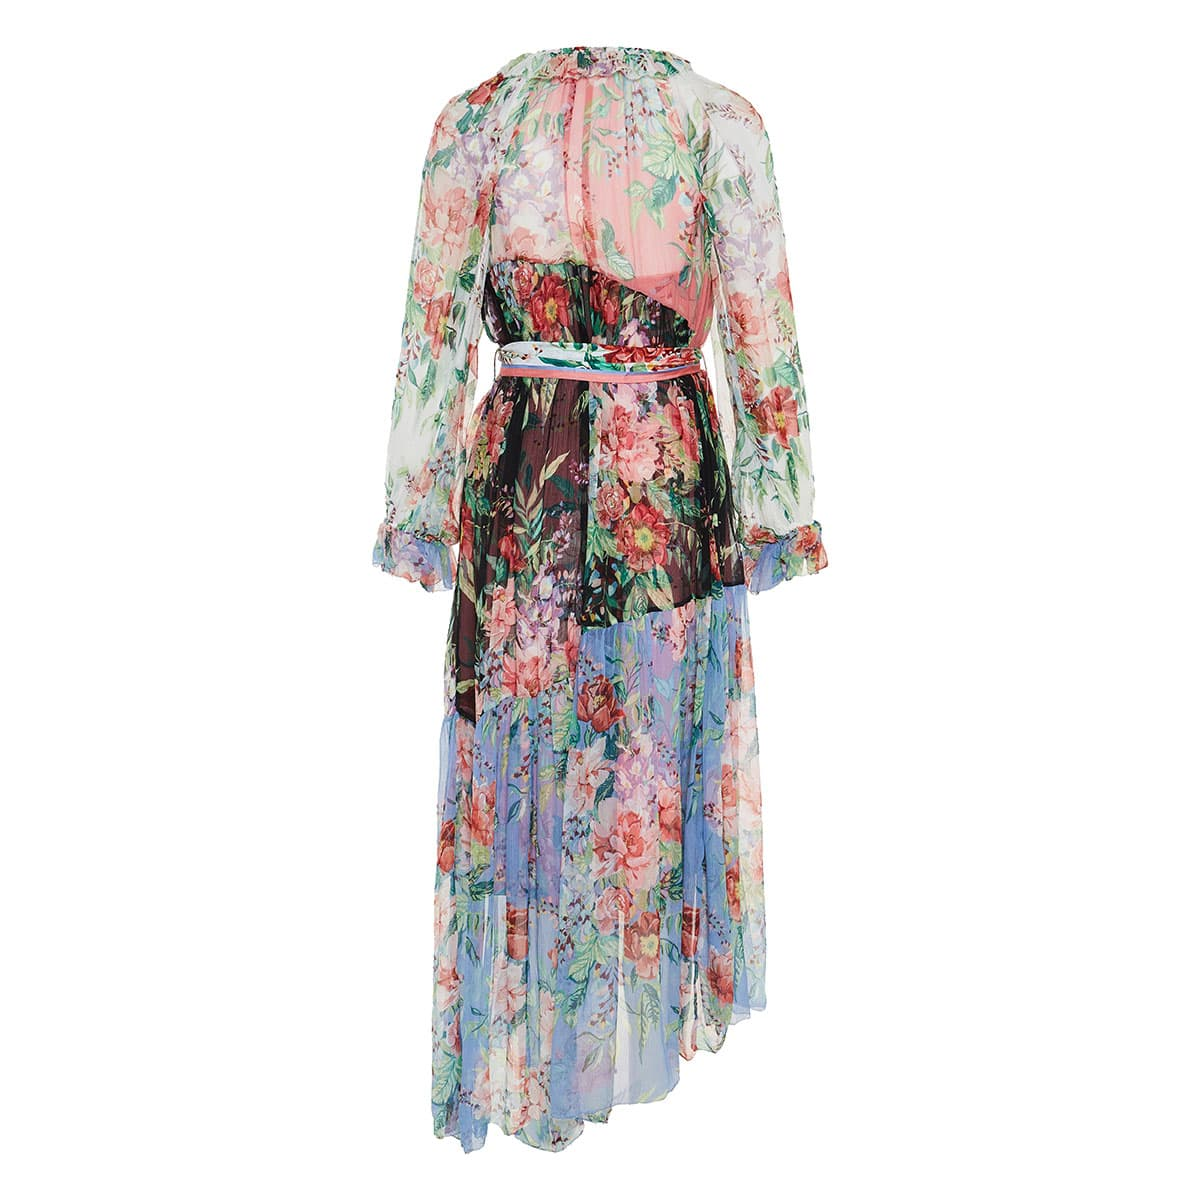 Bellitude asymmetric floral dress